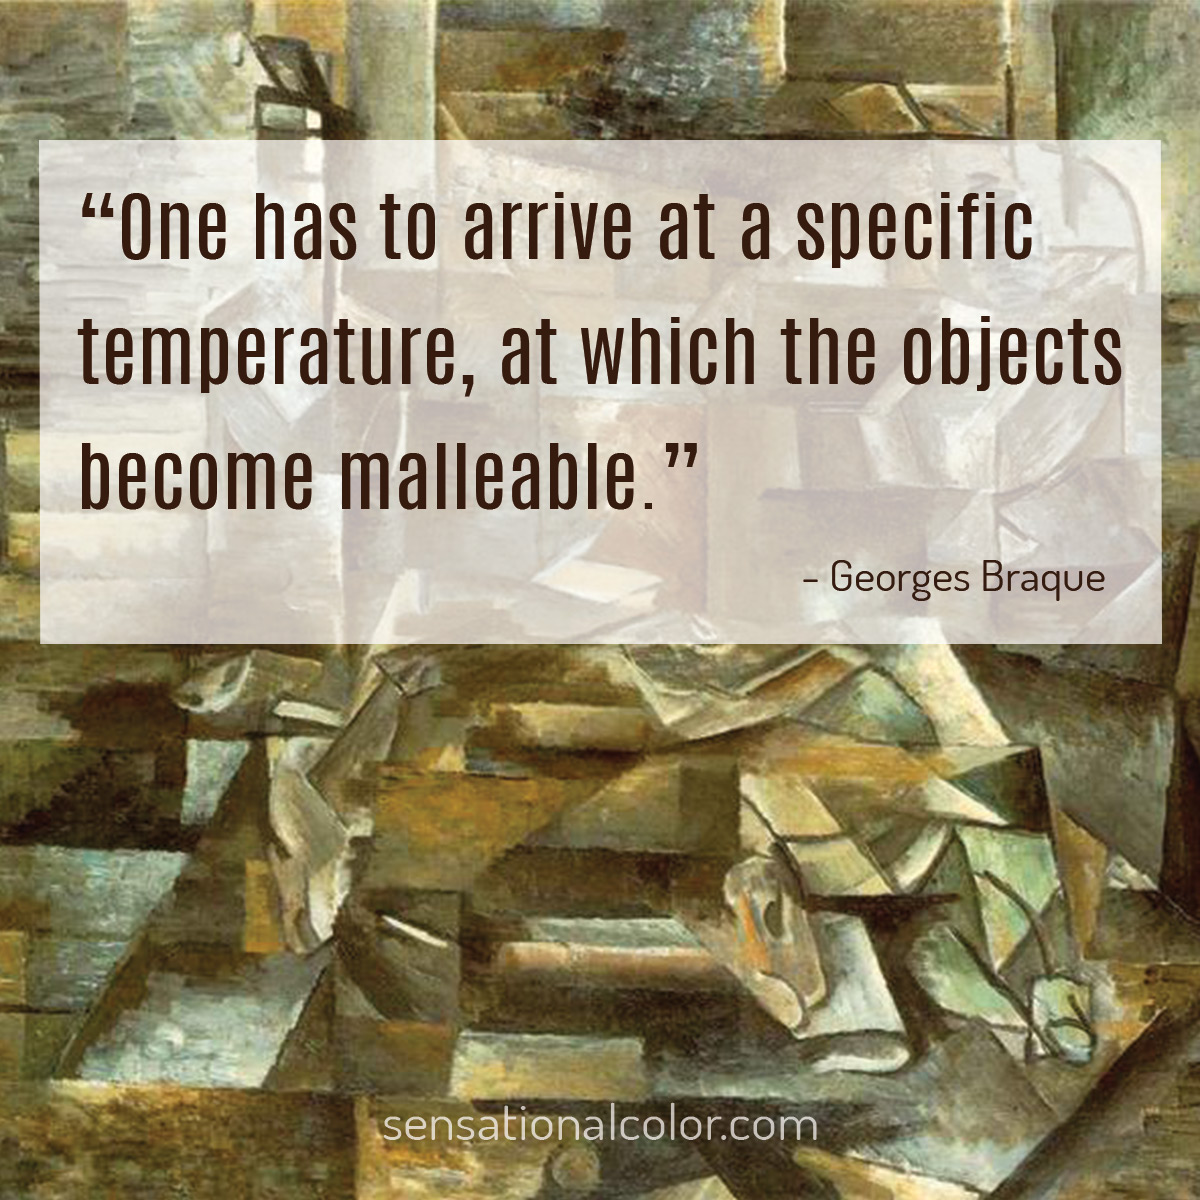 """One has to arrive at a specific temperature, at which the objects become malleable."" - Georges Braque"